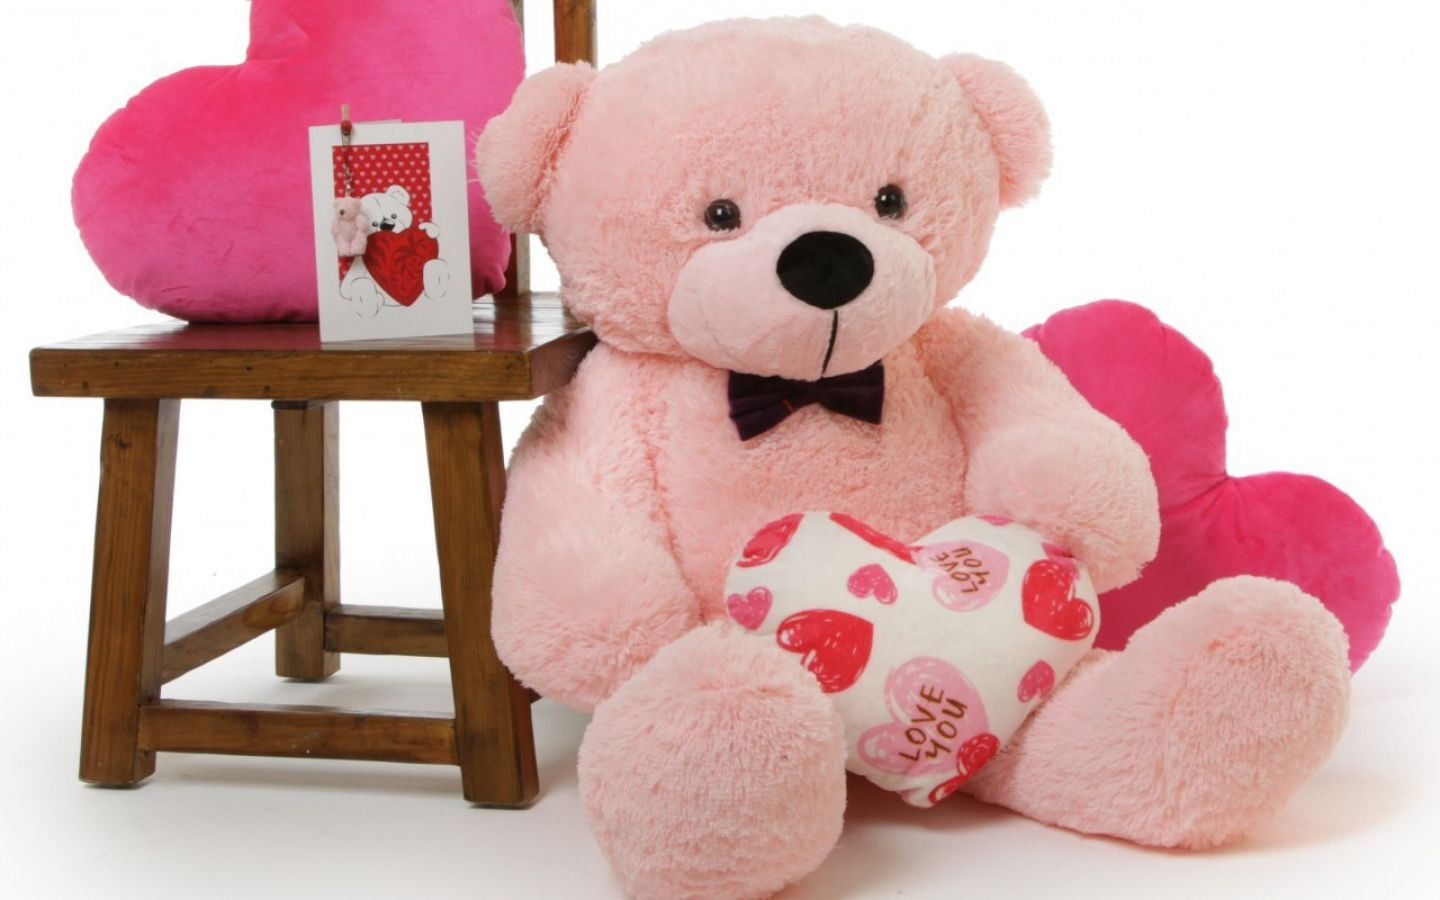 Collection Of Teddy Bear Wallpaper On Hdwallpapers 720 960 Taddy Bear Image Wallpapers 58 Wallpapers Ad Teddy Day Wallpapers Teddy Day Teddy Bear Wallpaper